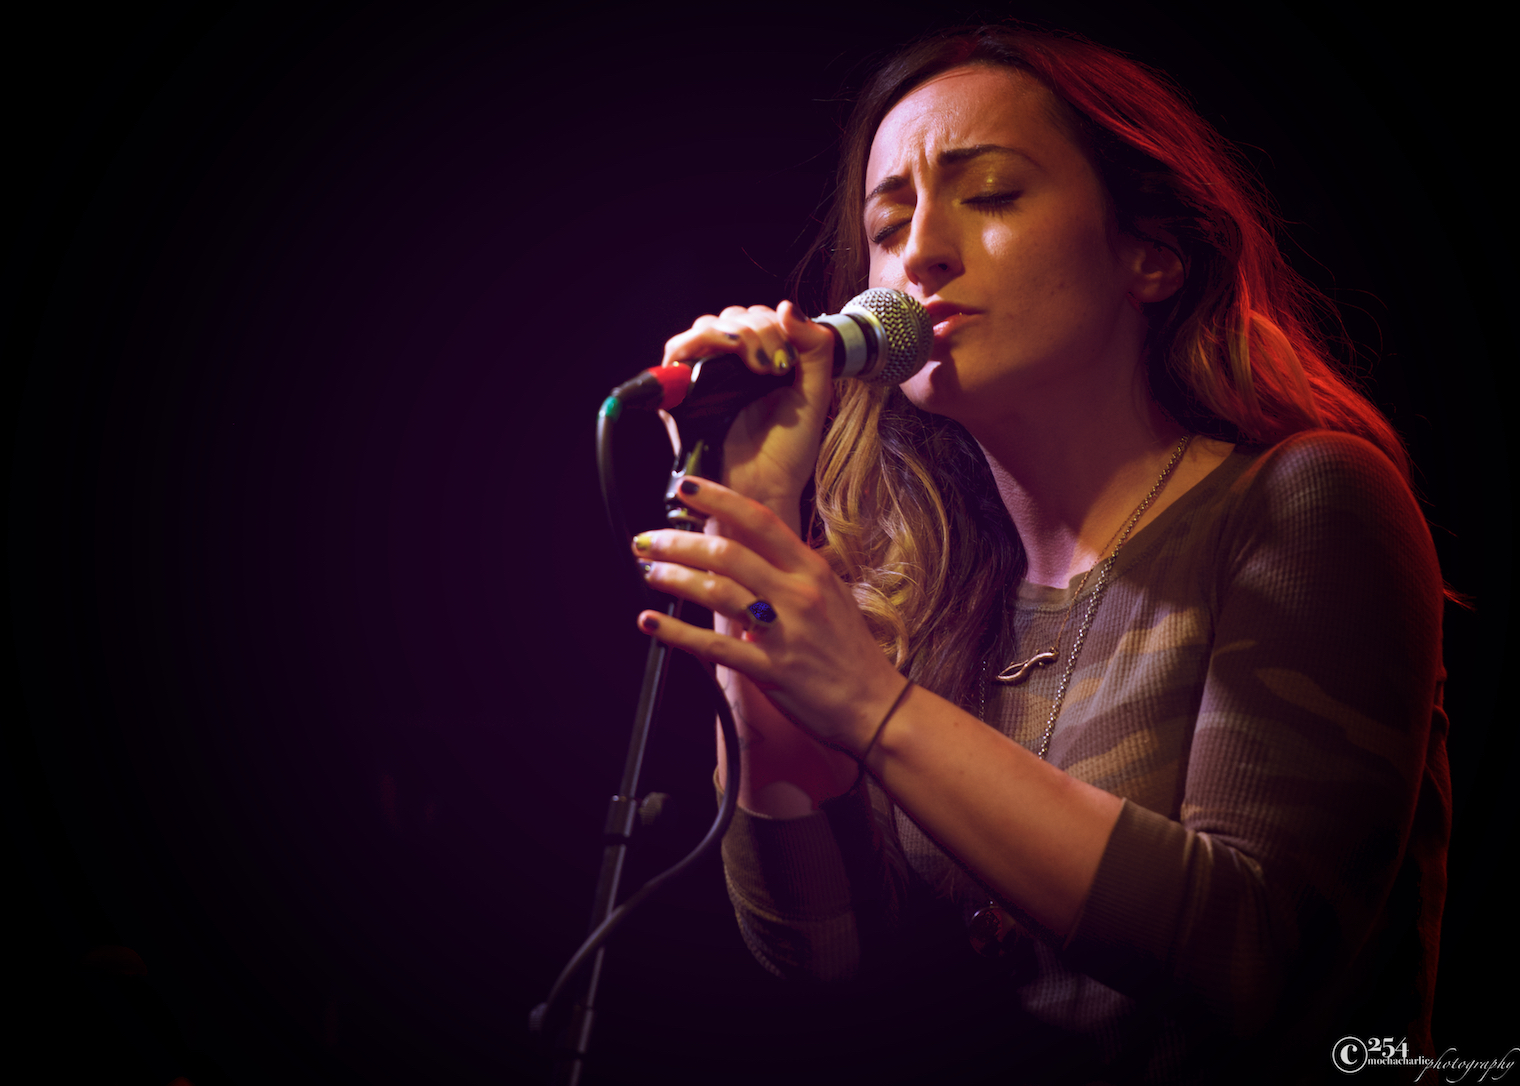 Tayler Lynn of Vaudeville Ettiquette at The Tractor Tavern (Photo by Mocha Charlie)